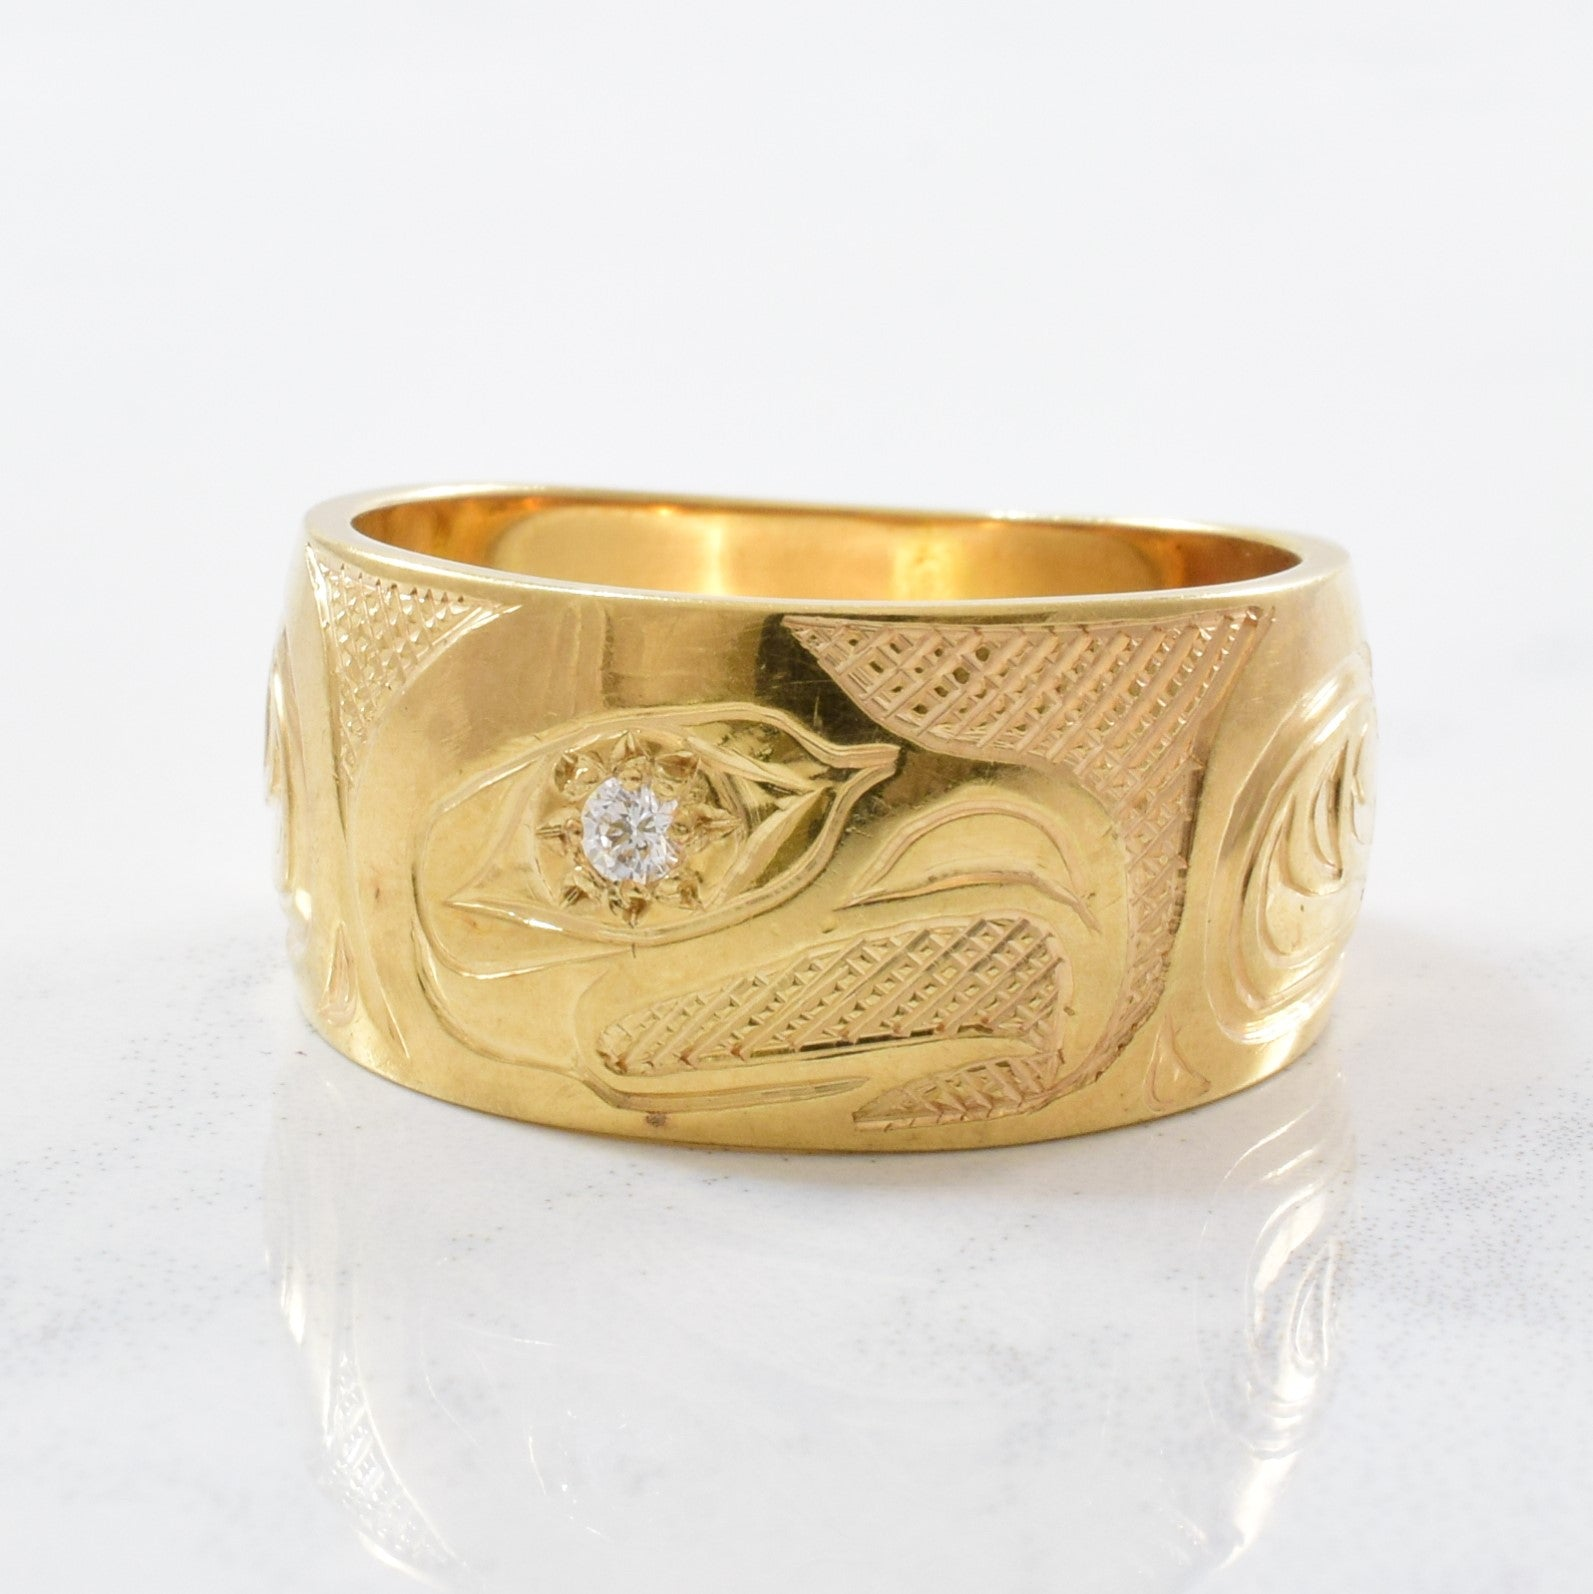 Indigenous Raven Art Diamond Ring | SZ 7.5 |